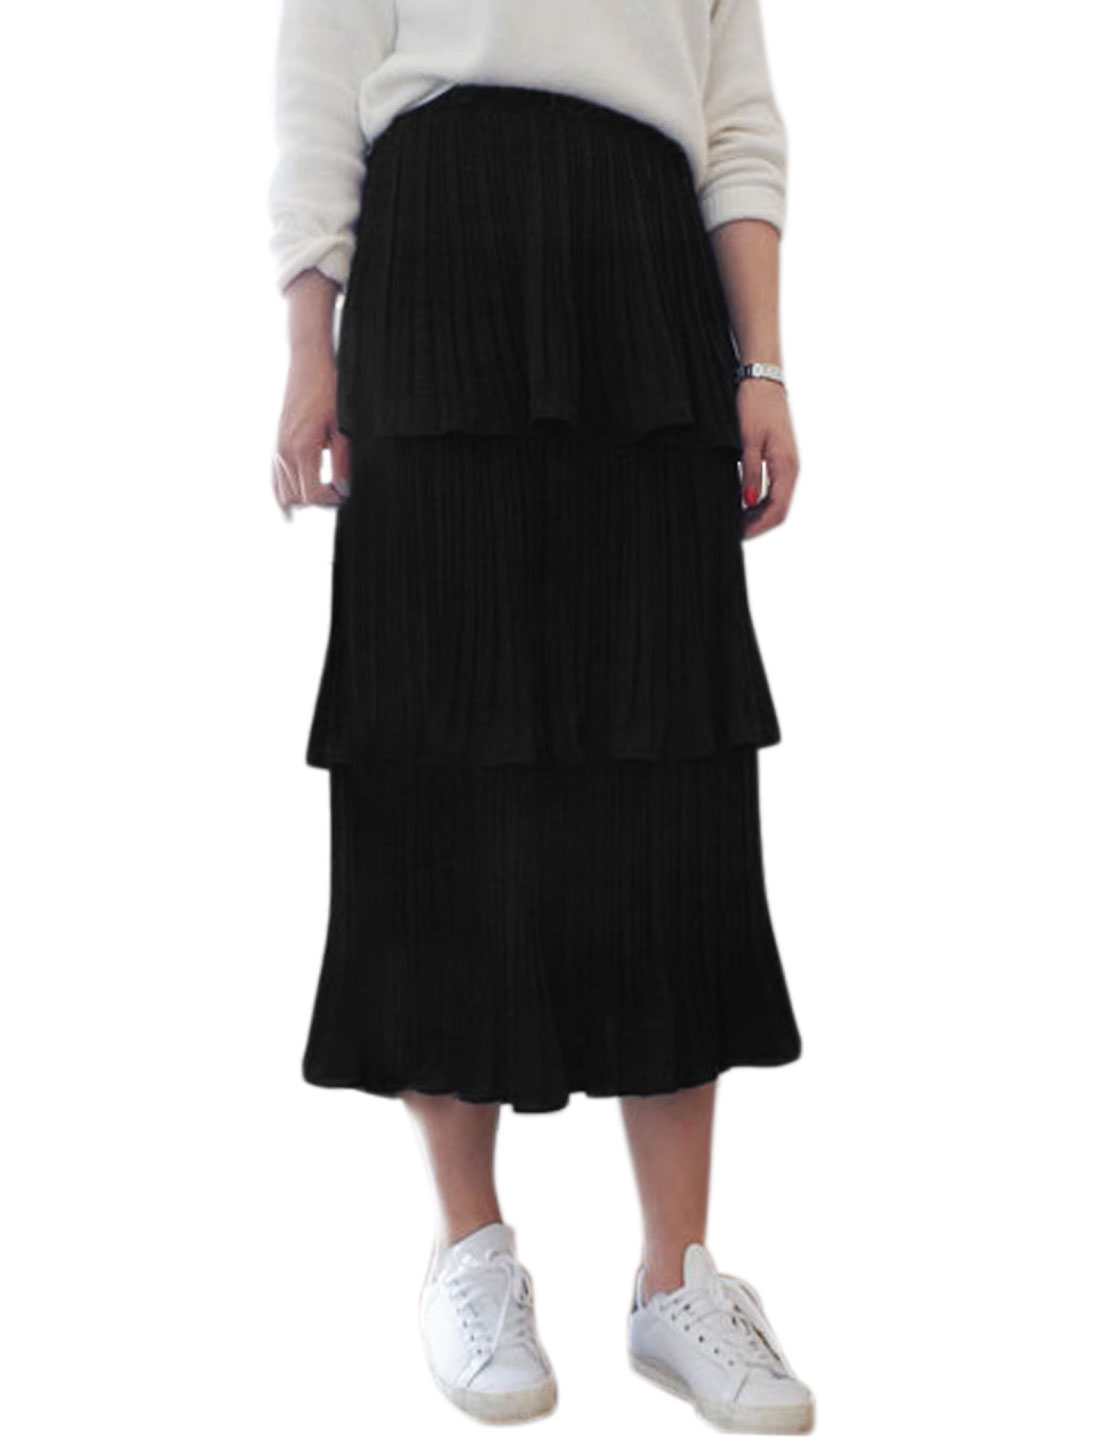 Women Elastic Waist Mid-Calf Pleated Tiered Skirt Black XS